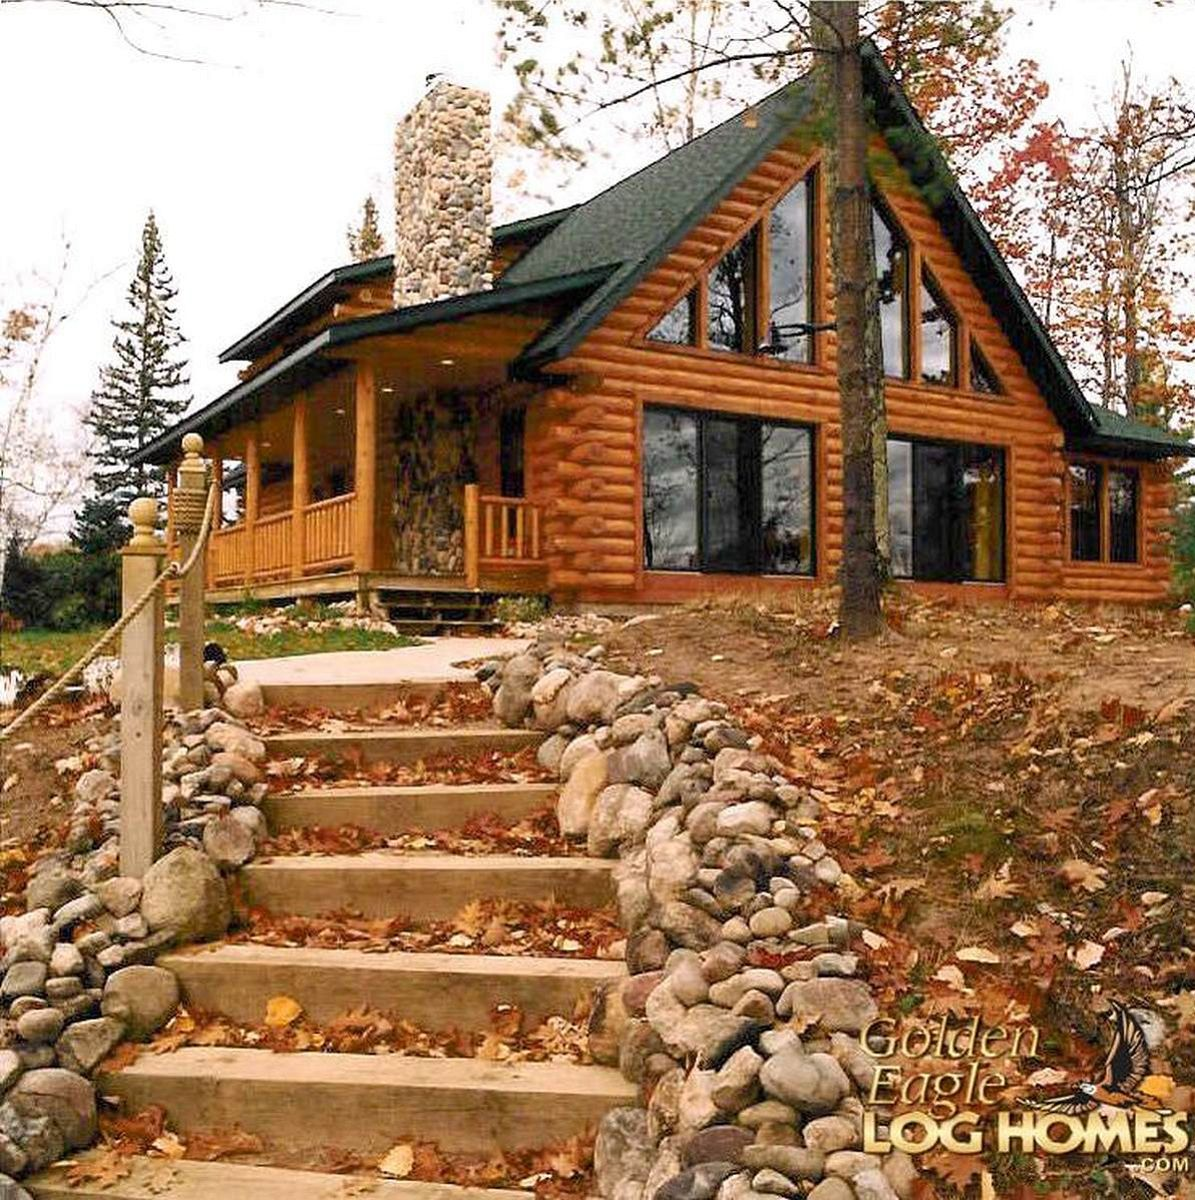 Log home by golden eagle log homes golden eagle log logs for Stone log cabin